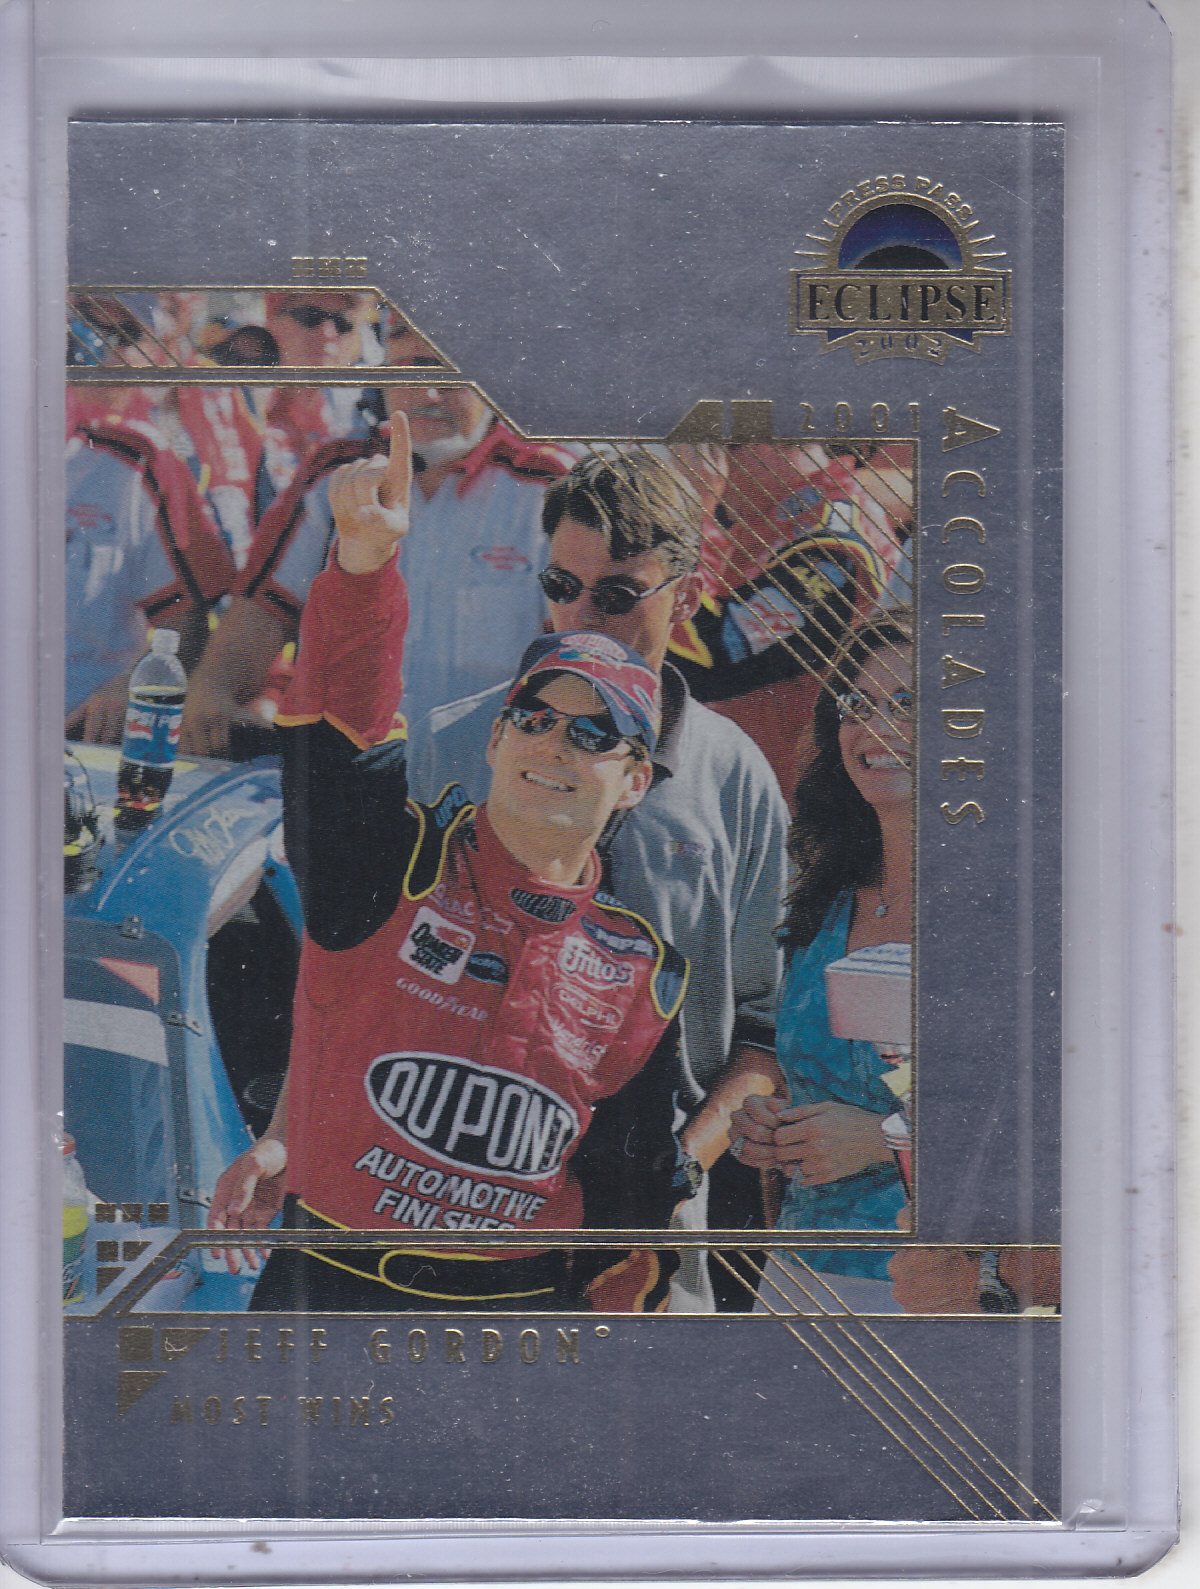 2002 Press Pass Eclipse Solar Eclipse #S30 Jeff Gordon ACC